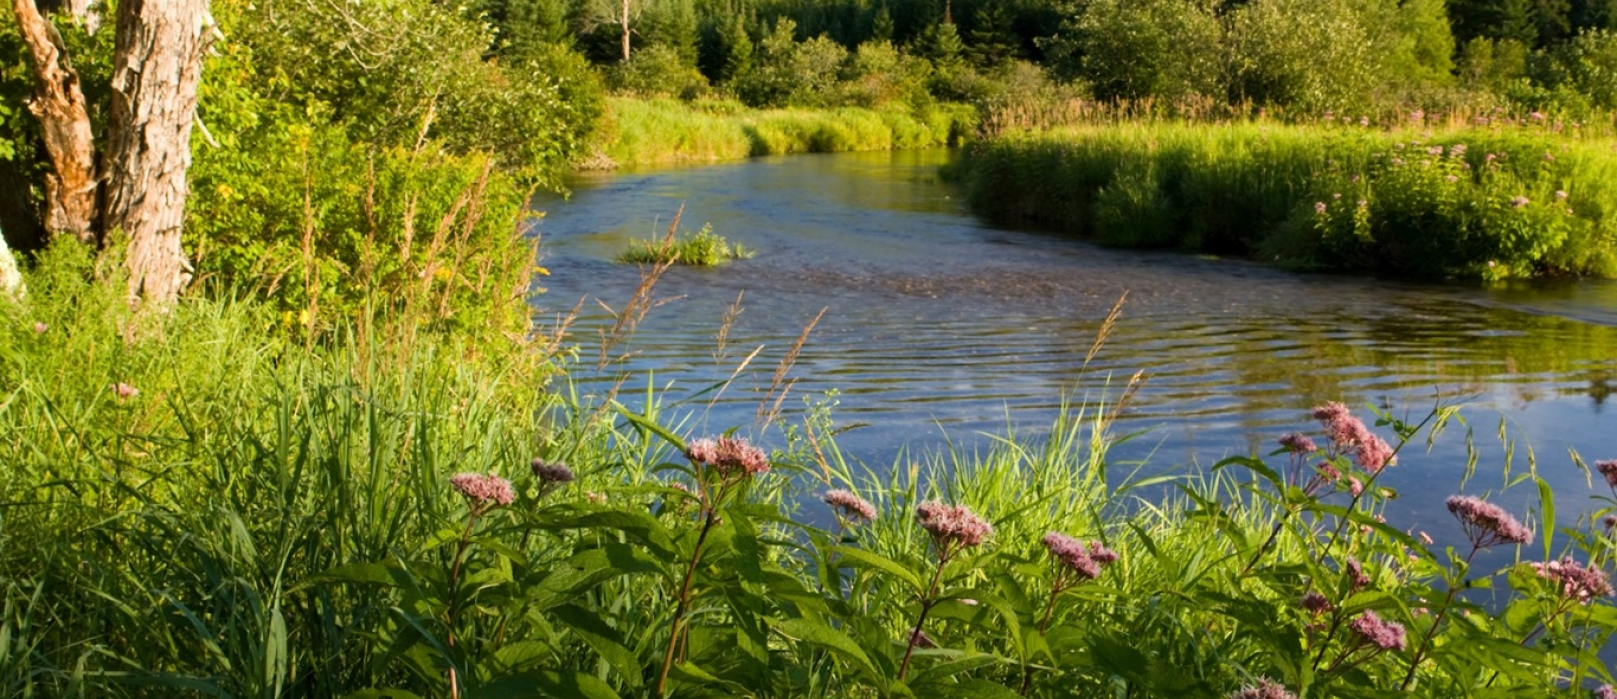 A river flows by a forest and pink wildflowers on the shore.